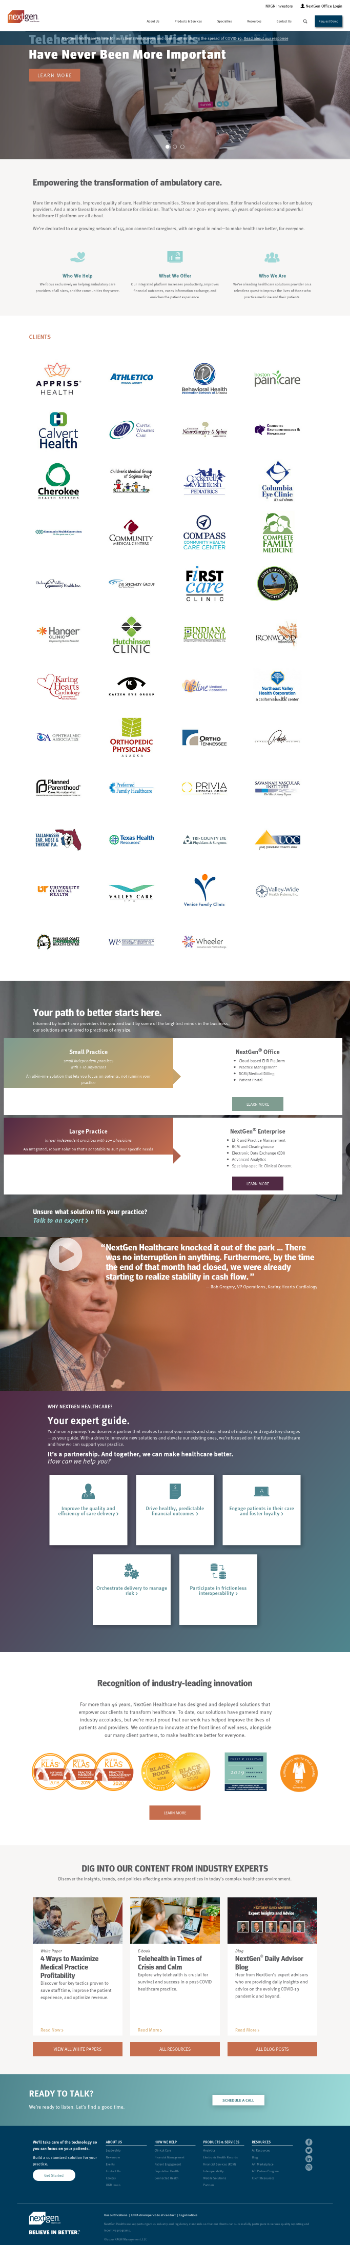 NextGen Healthcare, Inc. Website Screenshot